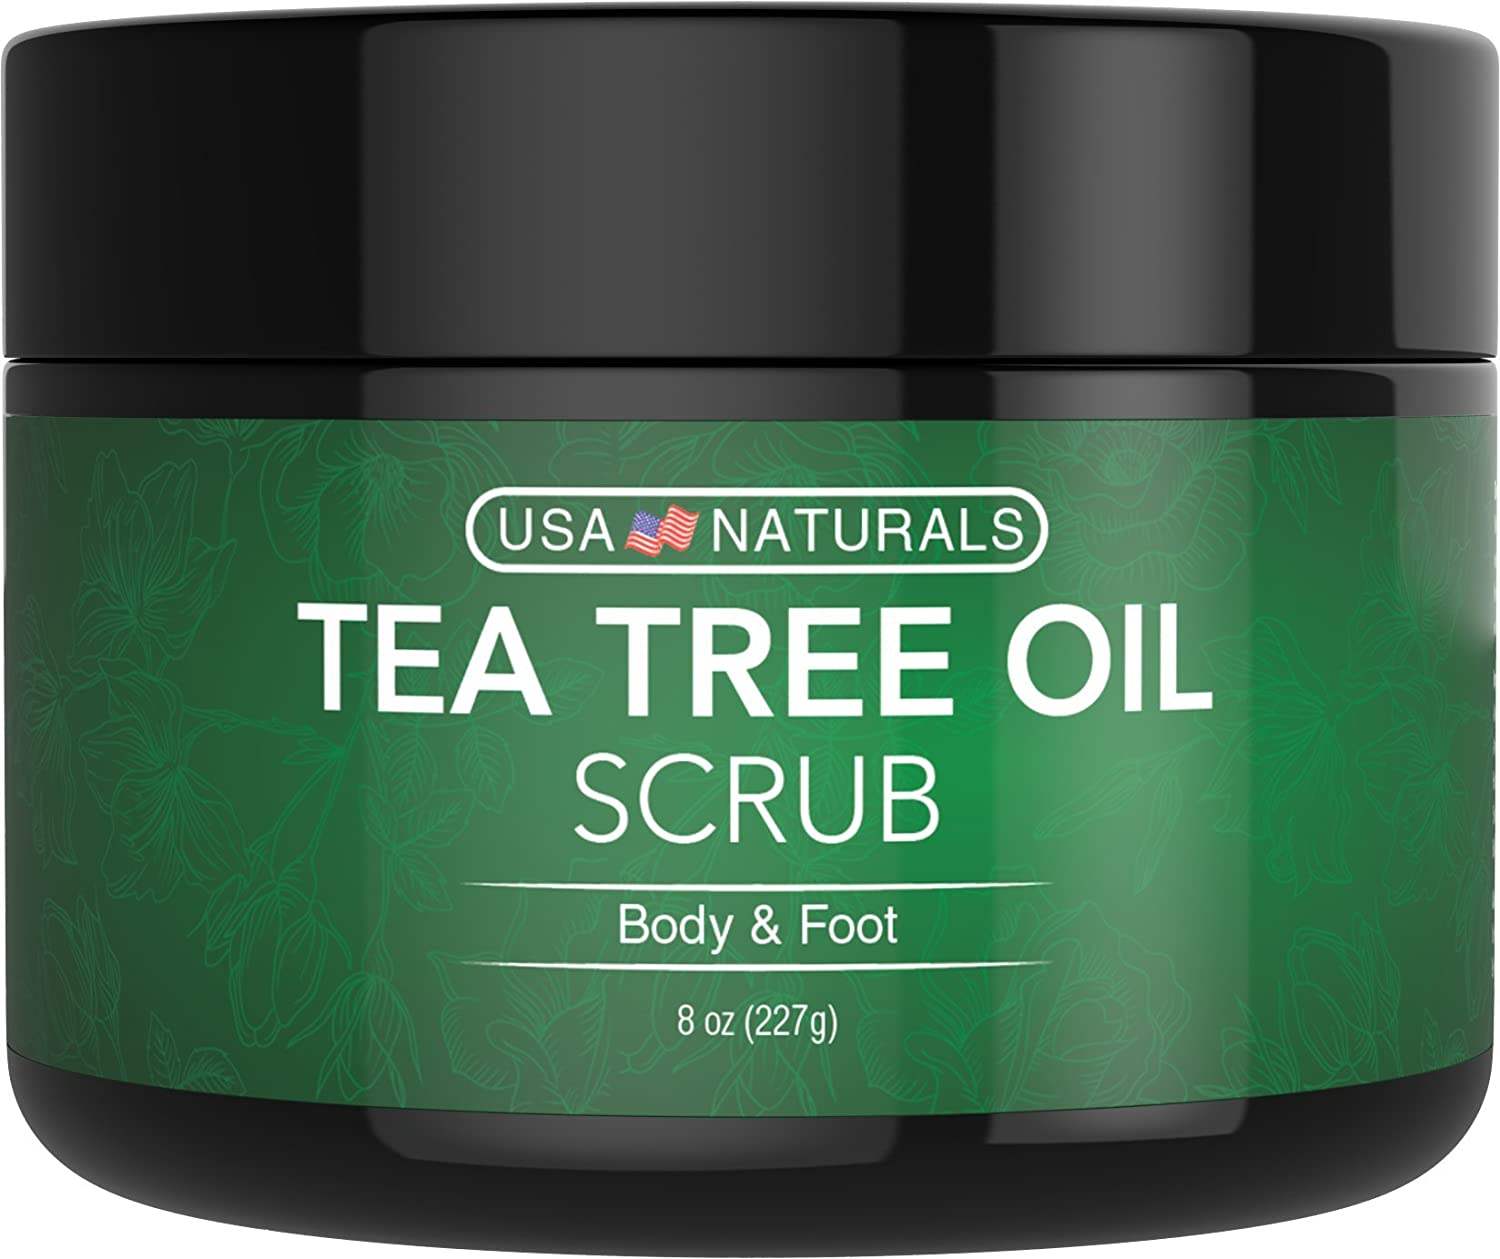 Tea Tree Oil Foot and Body Scrub - Antifungal Treatment - Exfoliating Scrub with a Unique Blend of Essential Oils - Smooths Calluses - Helps With Athlete's Foot, Acne, Jock Itch & Dead, Dry Skin USA Naturals Tea Tree Foot Scrub